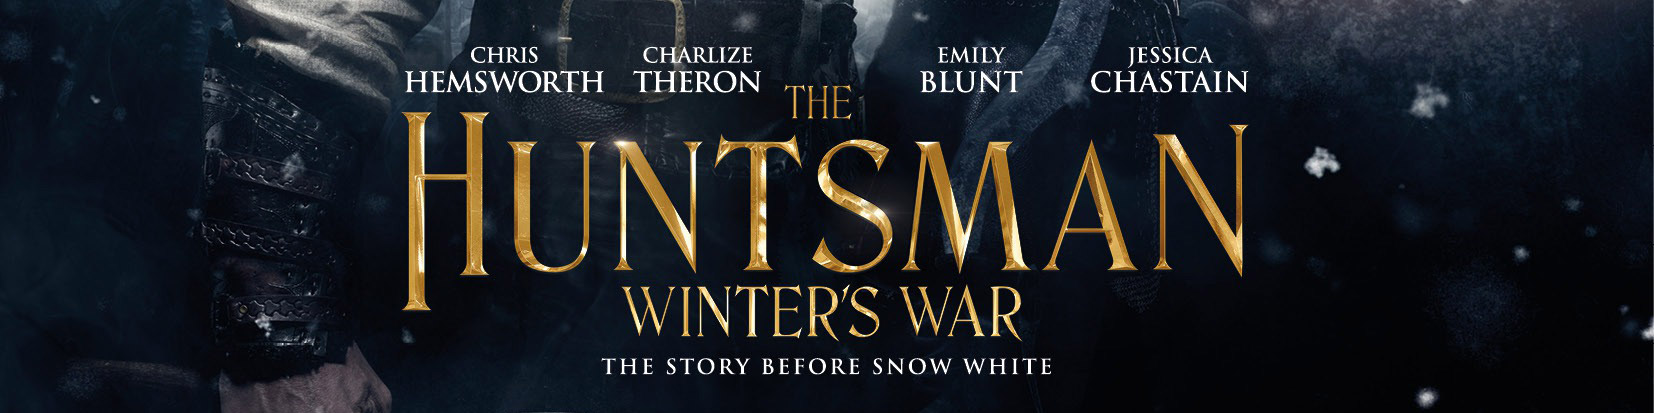 © 2016 Universal Pictures – Click the image to see the poster for _The Huntsman: Winter's War_ on IMPAwards.